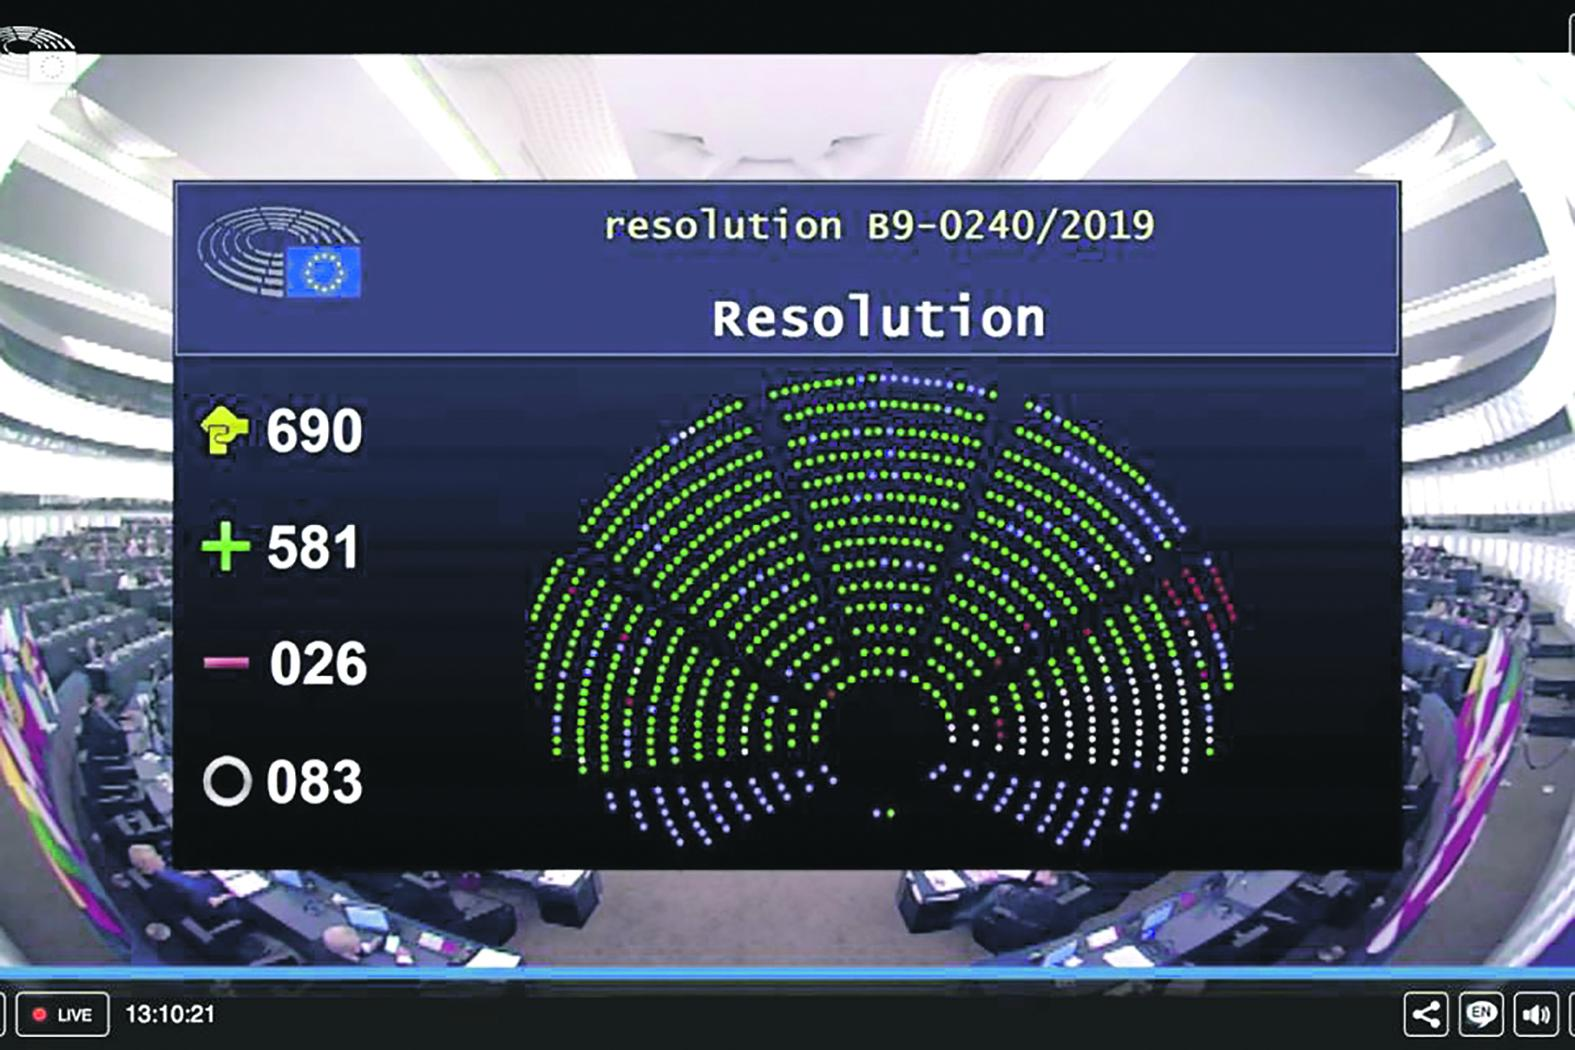 MEPs, including the socialists, call for Joseph Muscat to resign immediately on December 18, 2019.